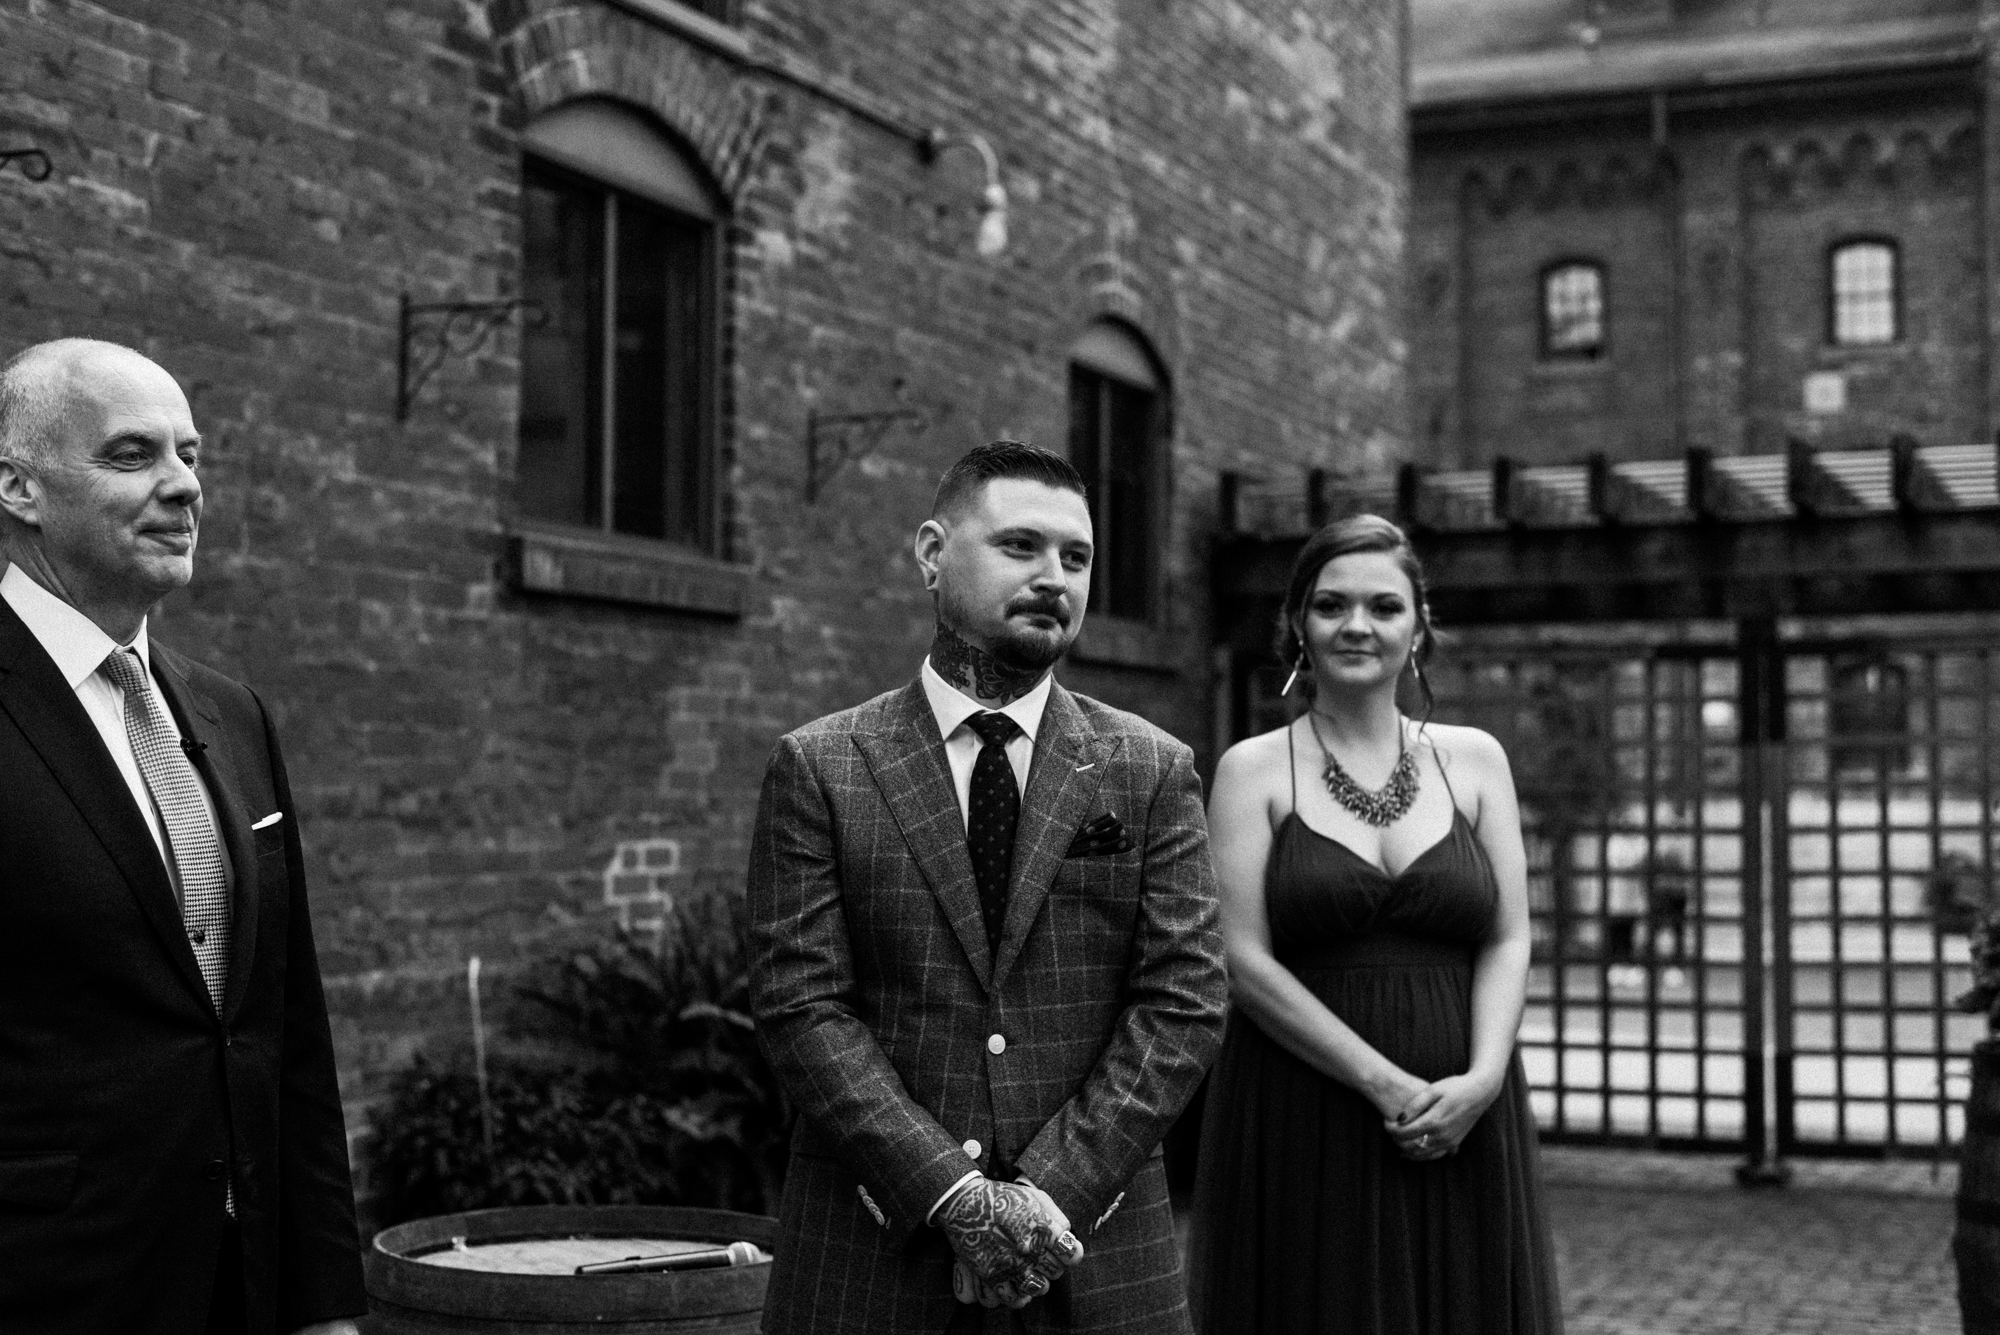 monika-matt-archeo-wedding-toronto-wedding-photographer-18.jpg